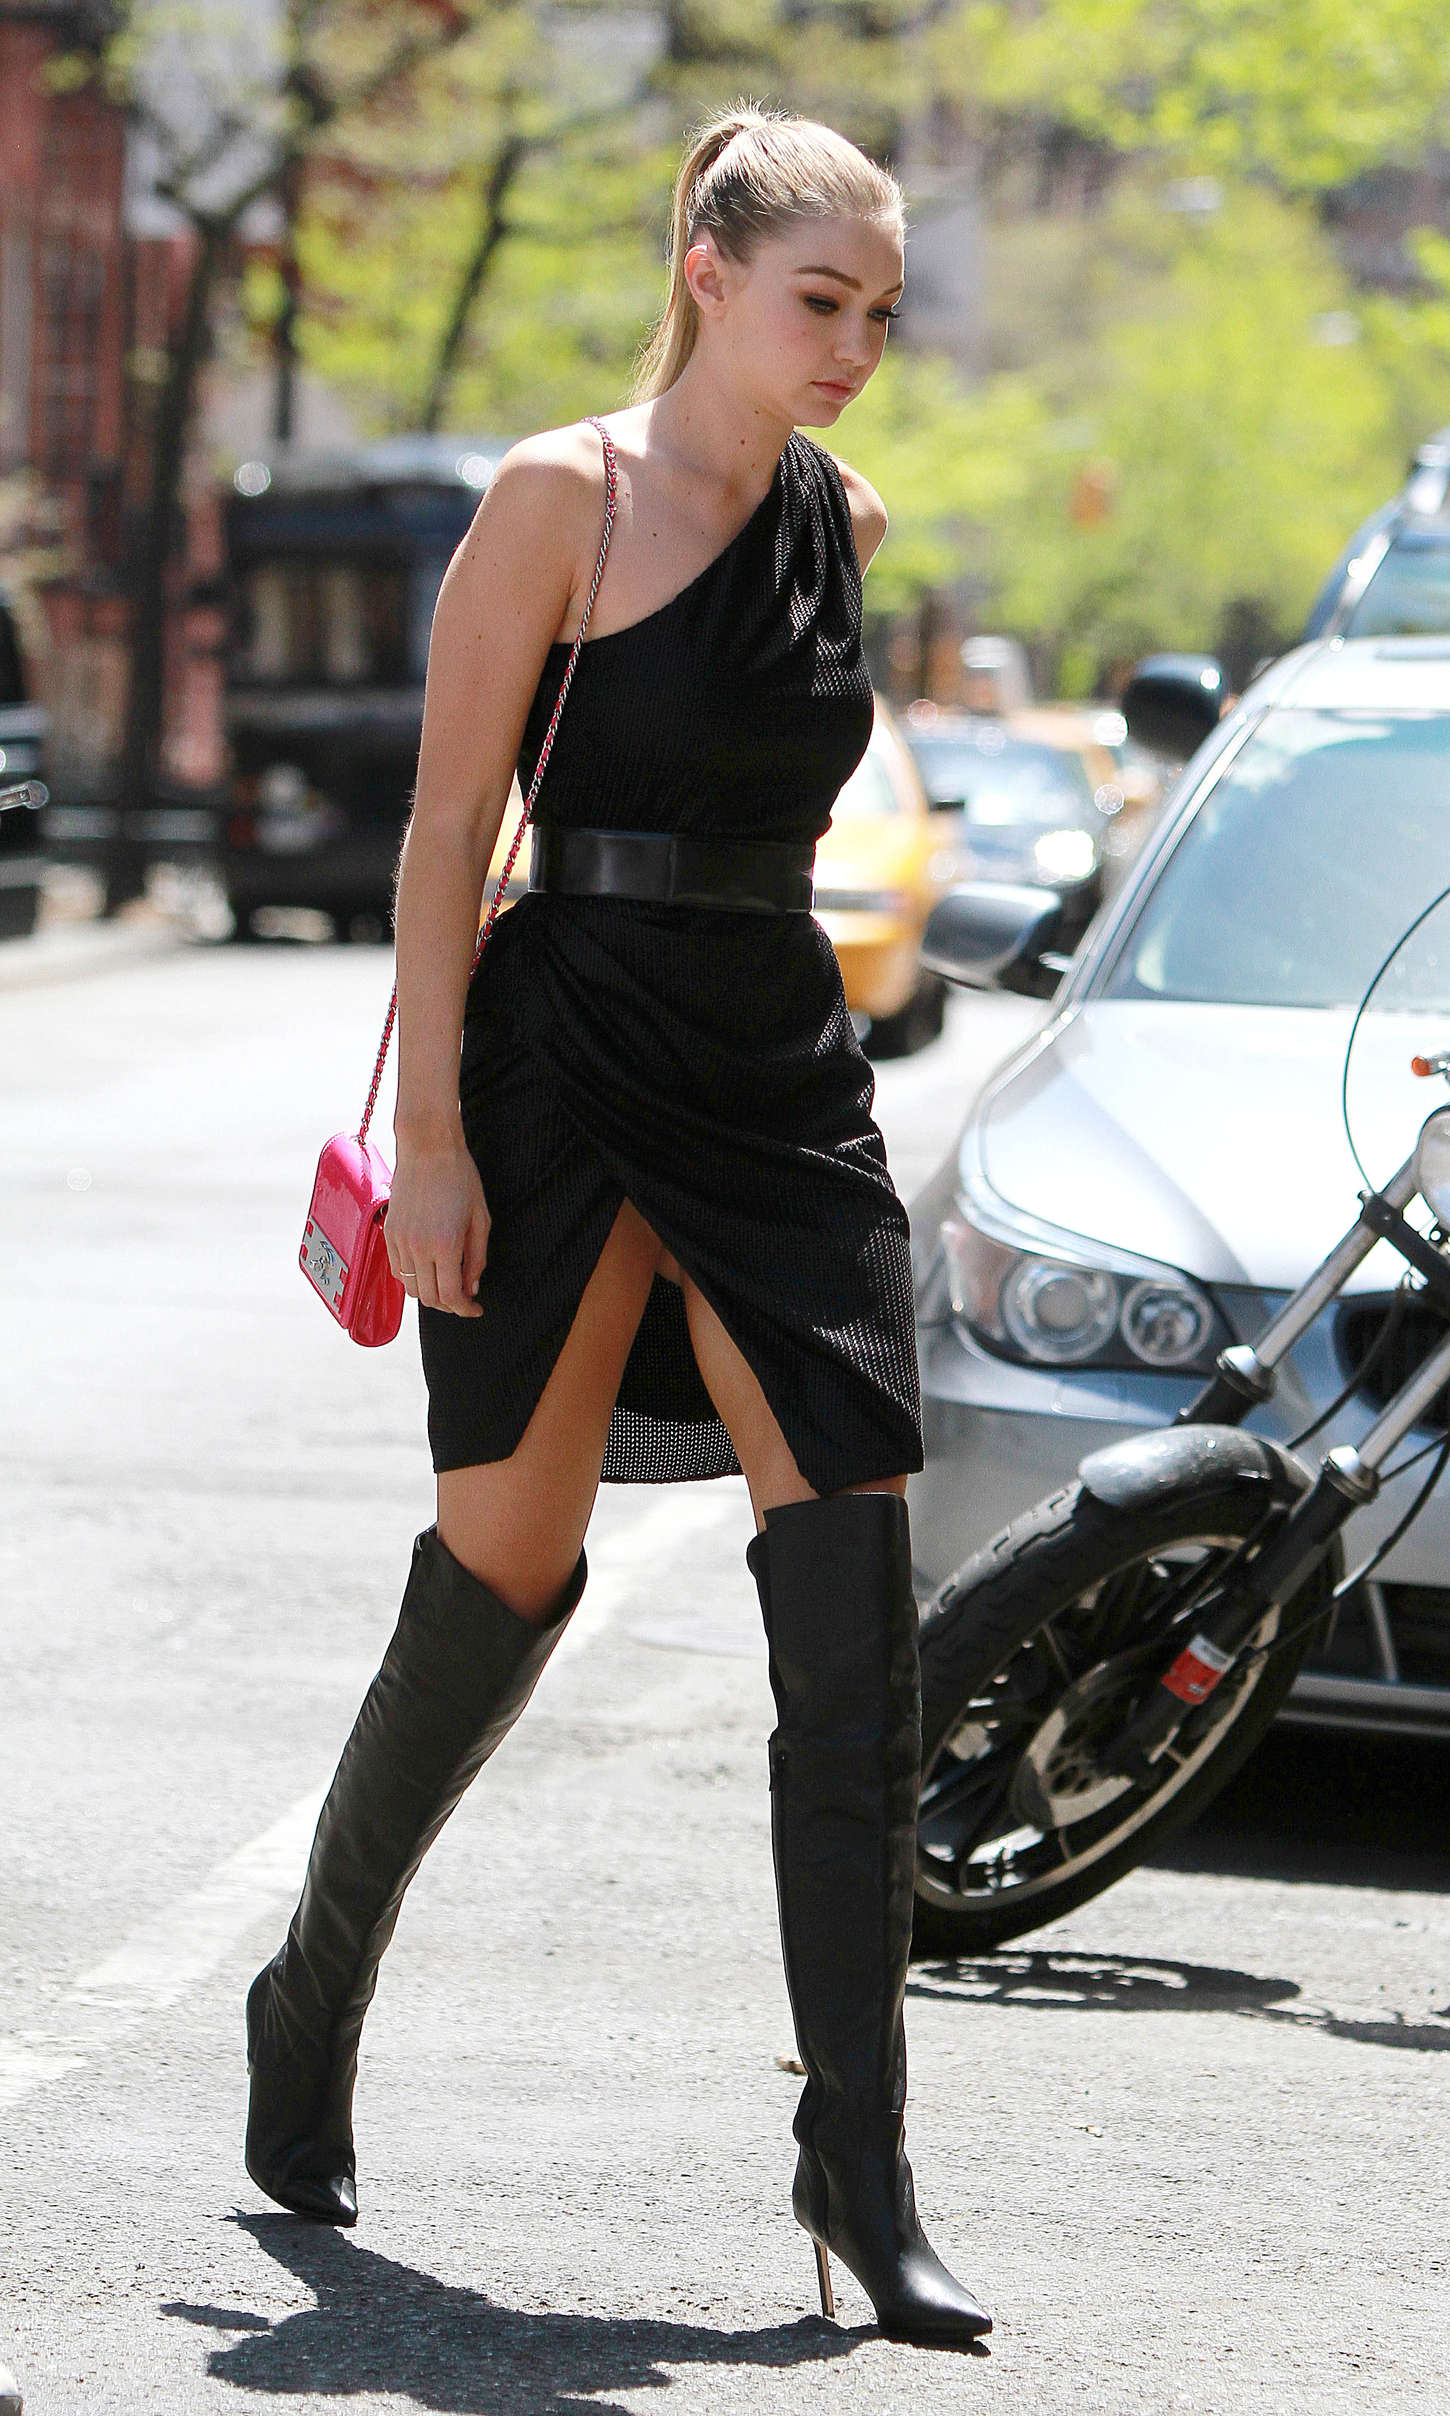 Gigi Hadid: Heading to a Photoshoot -52